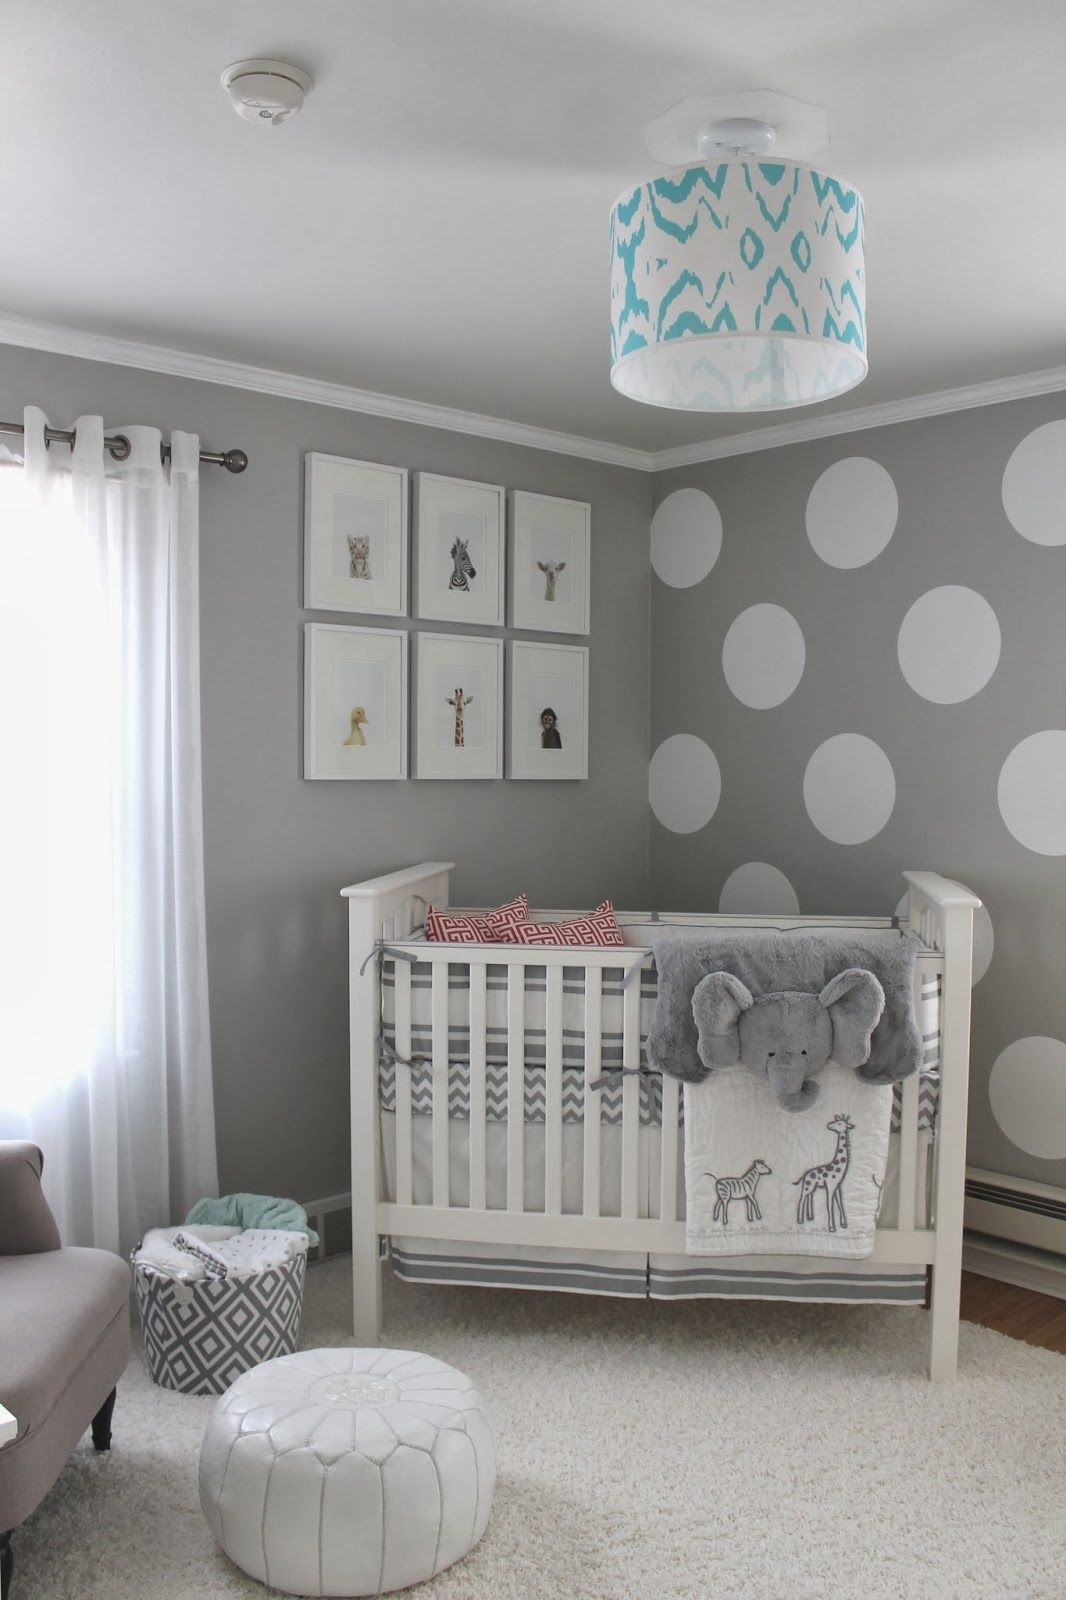 Gray baby room pictures photos and images for facebook for Attractive commentaire faire une couleur beige 7 chambre en bleu et blanc